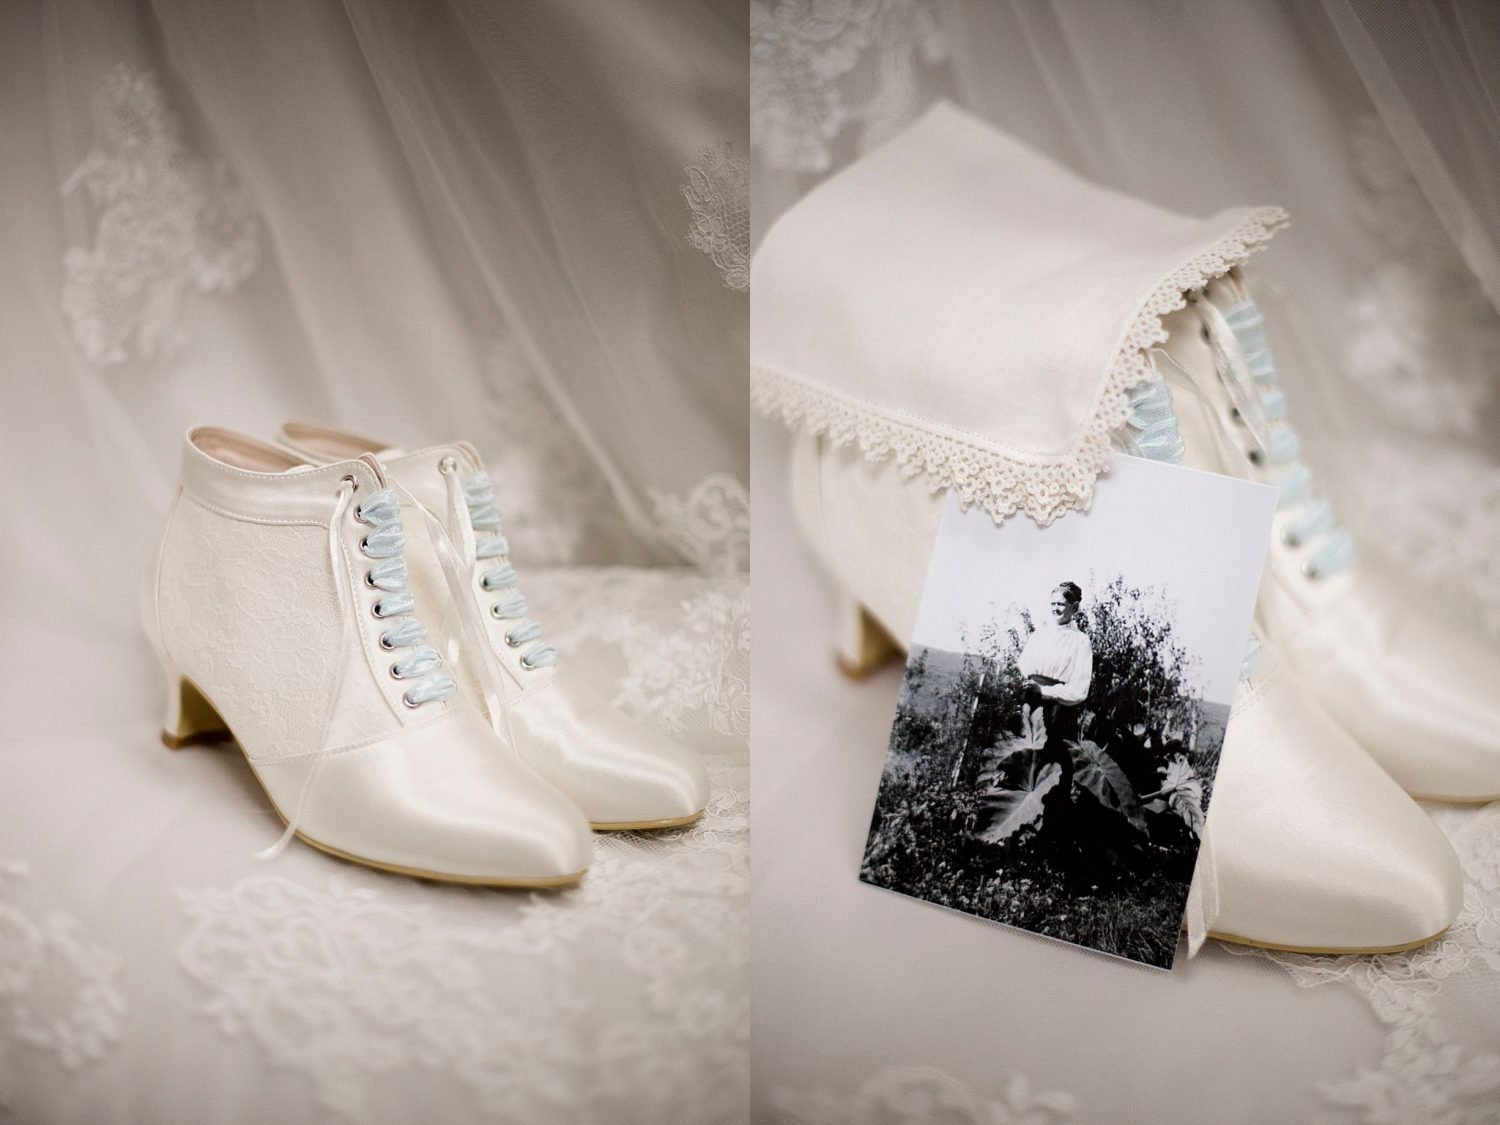 Bride's shoes resting on veil, with a photo of her grandmother with the handkerchief she inherited.